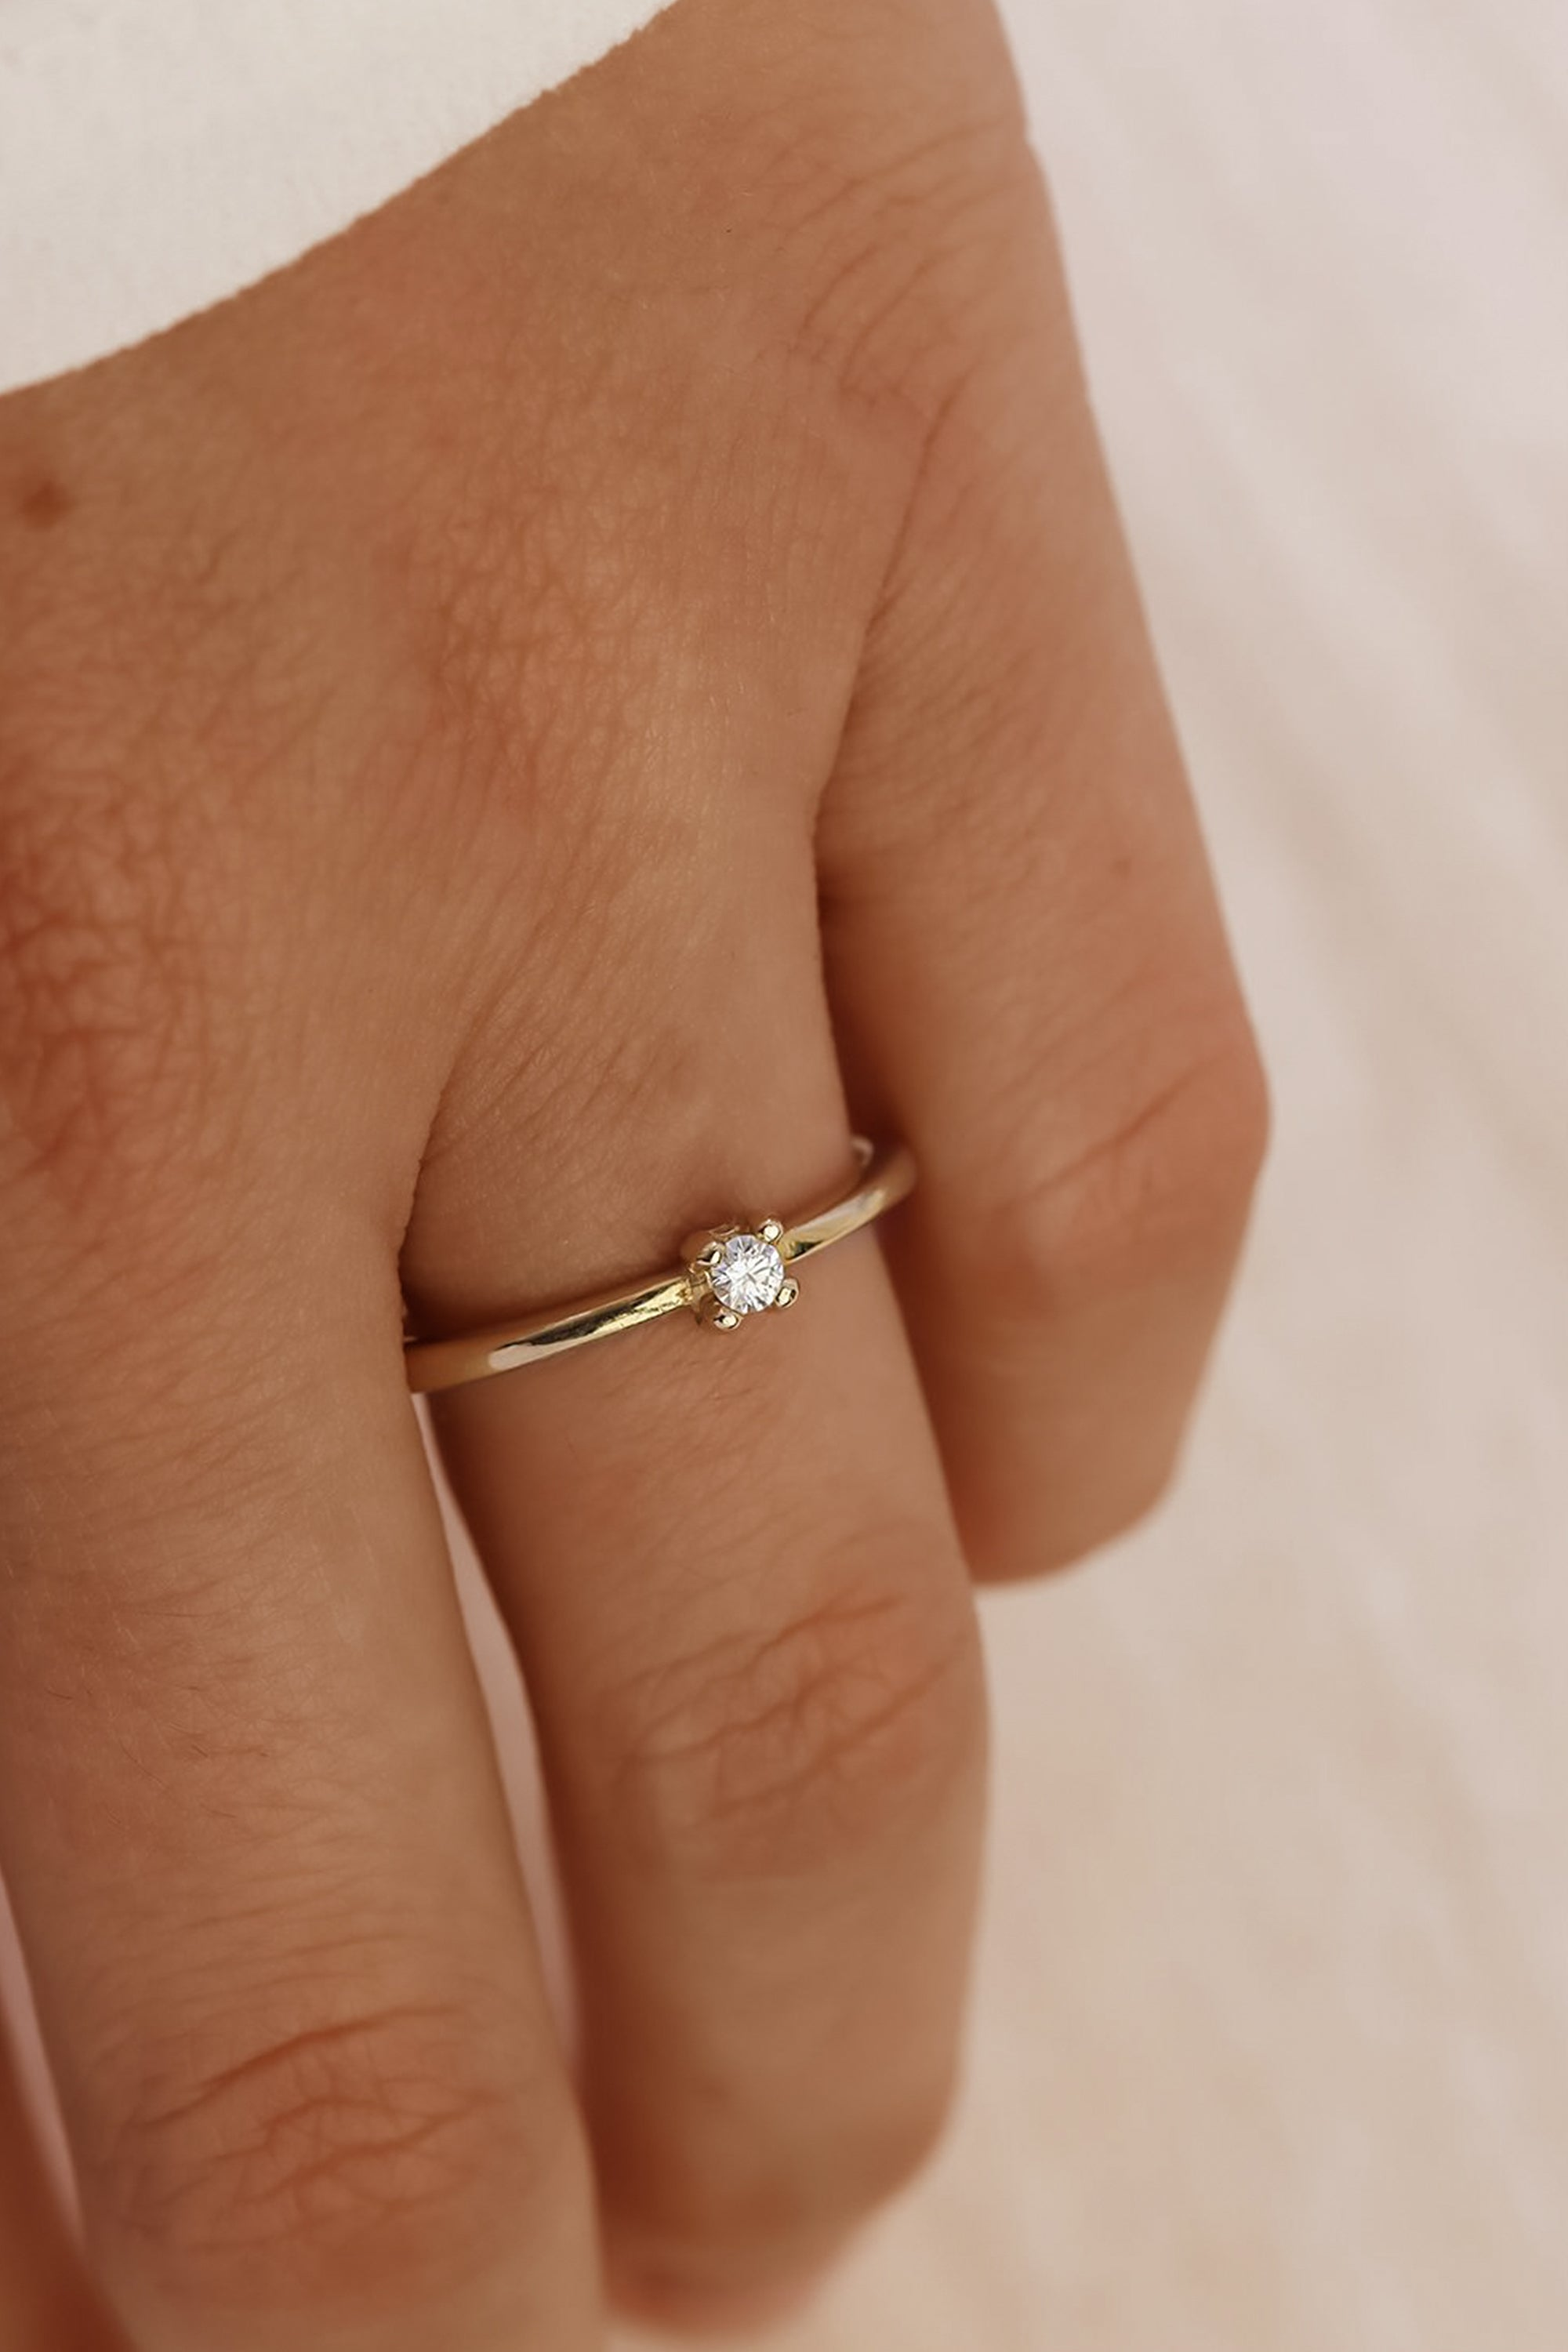 simple-gold-jewelry-solid-gold-diamond-promise-ring